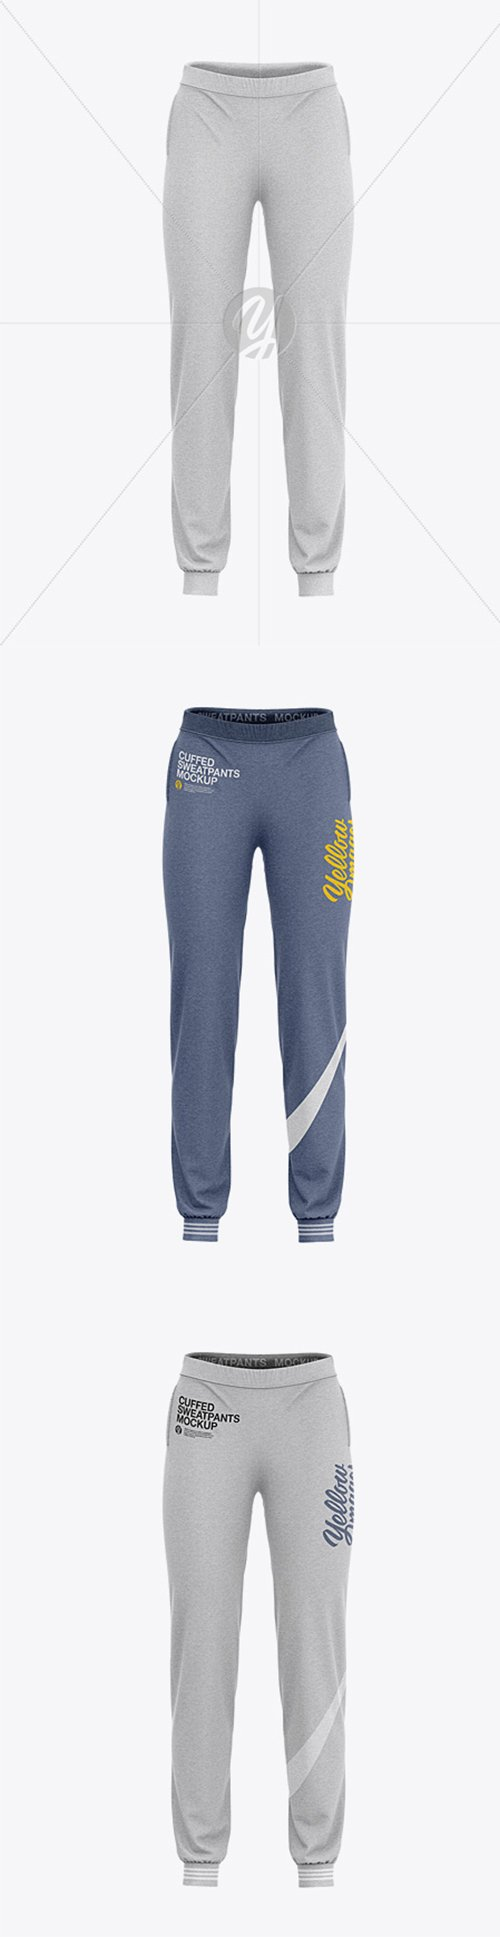 Womens Heather Cuffed Joggers - Front View 35533 TIF